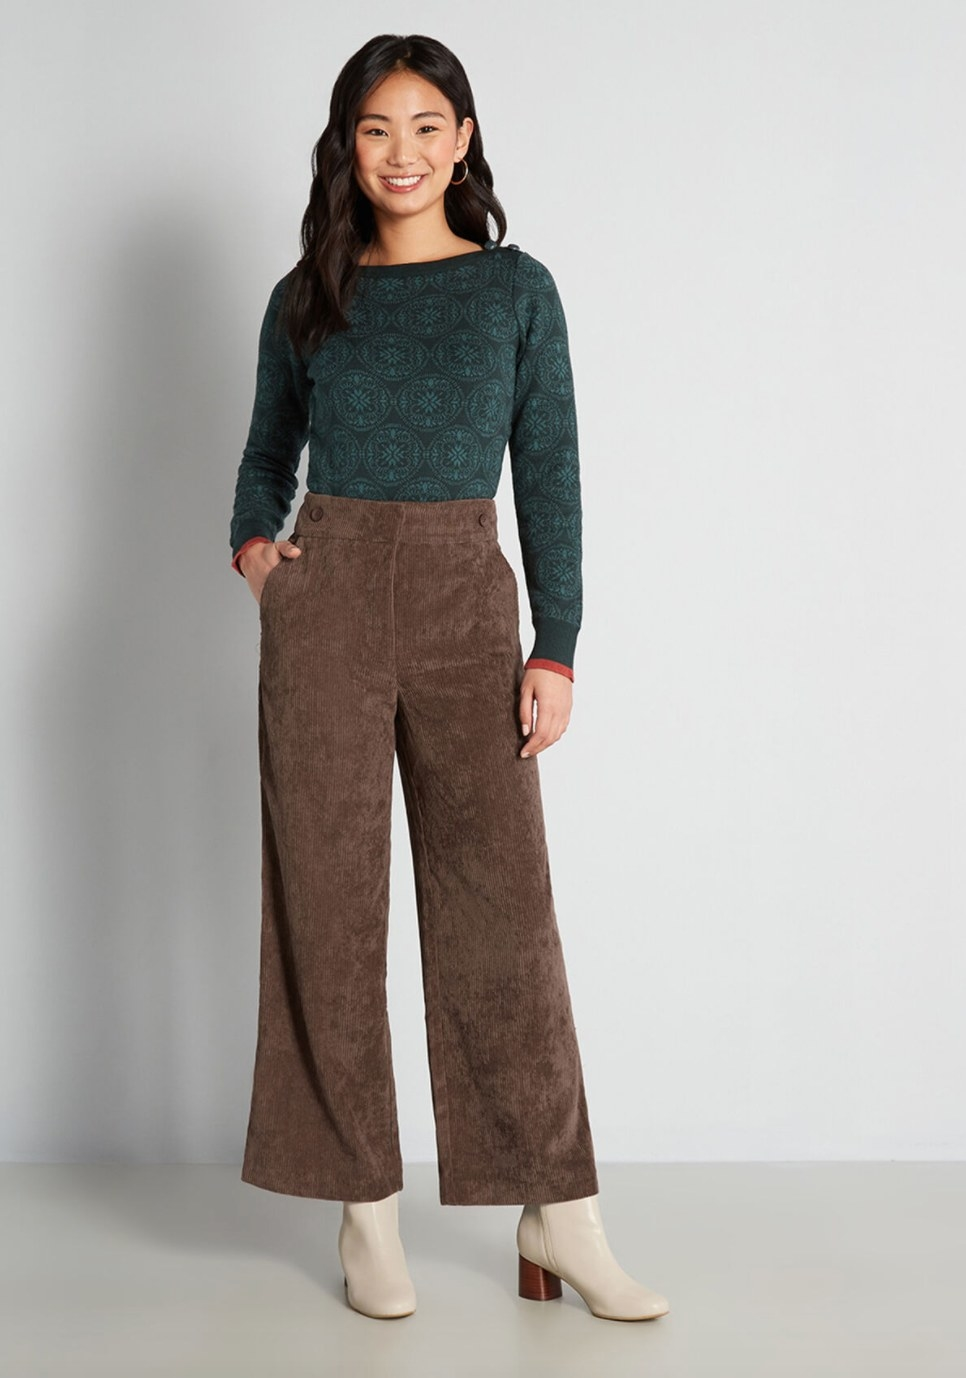 The pair of cord wide-leg pants in brown